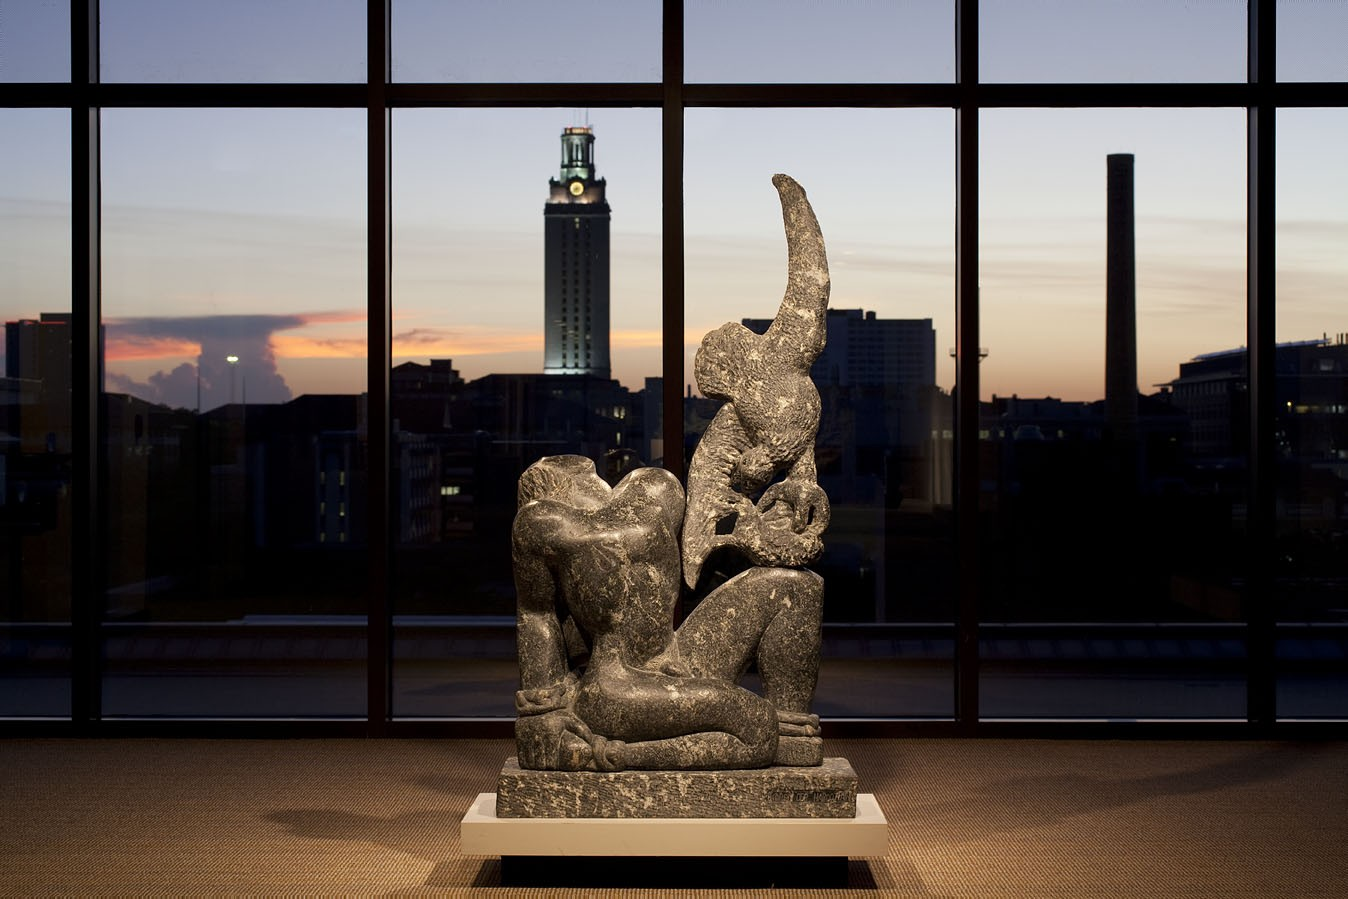 A sculpture in front of a large window with a tower in the background